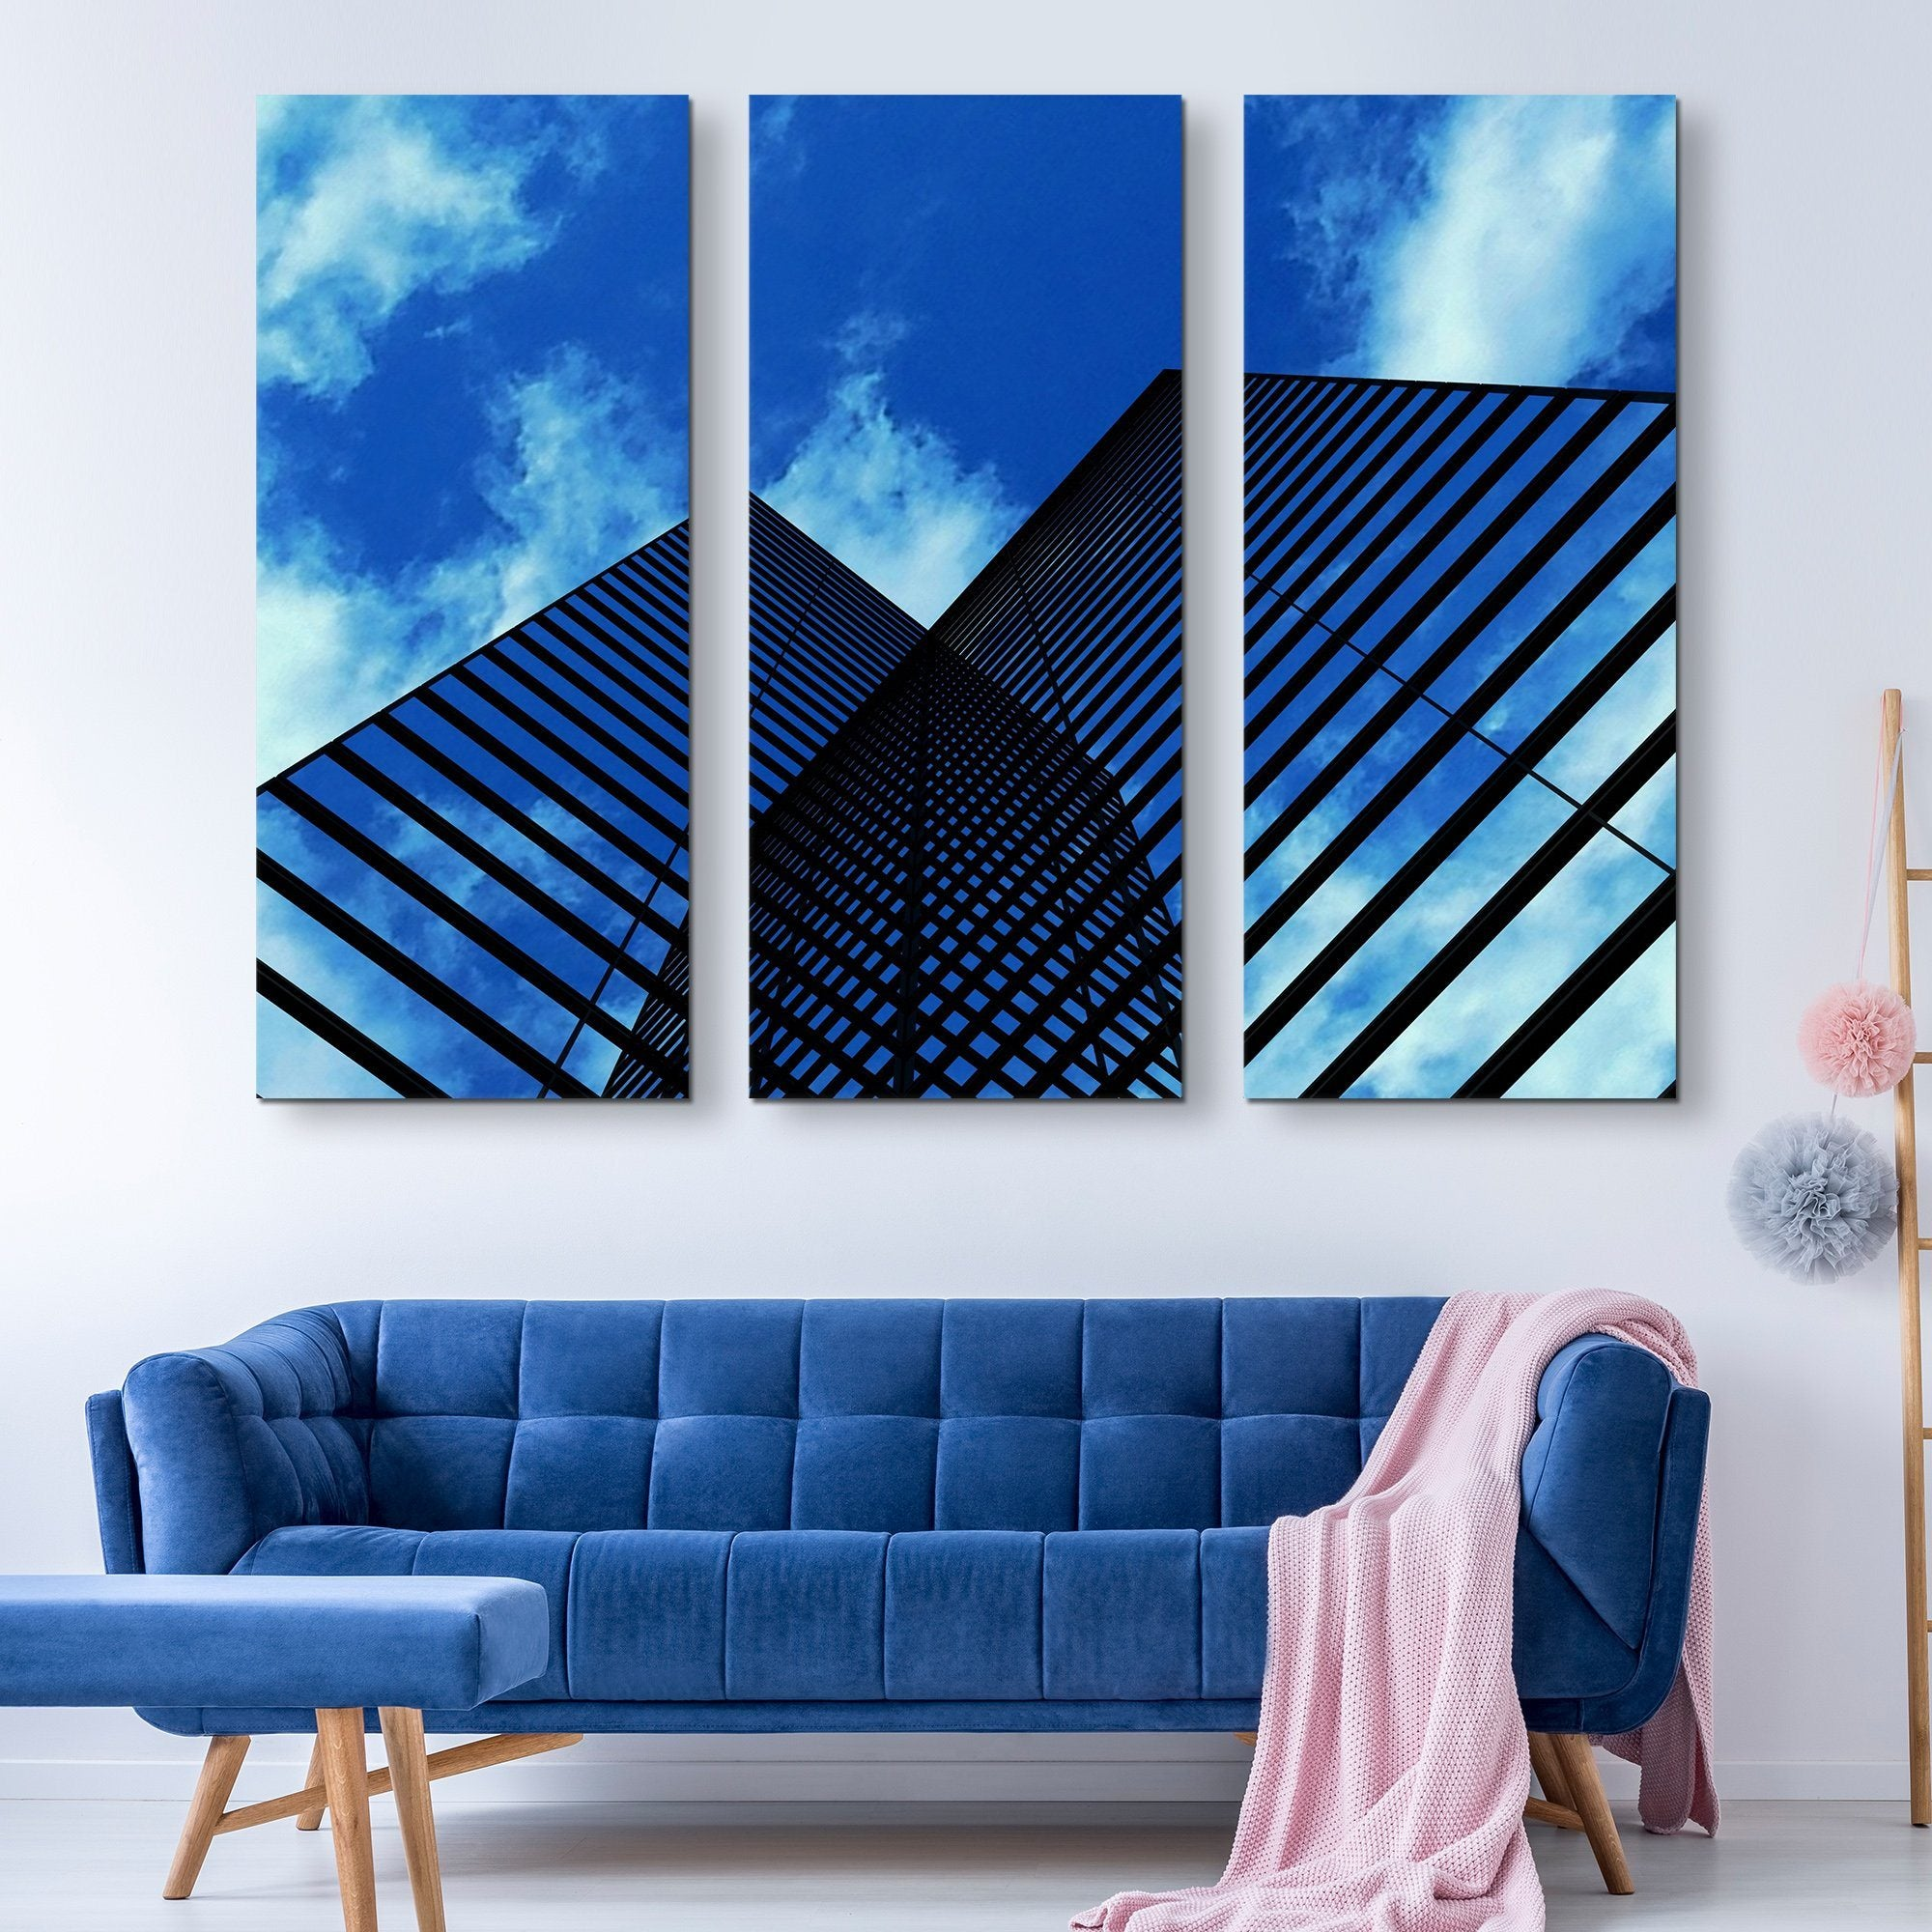 3 piece Skyscrapers Reflection wall art